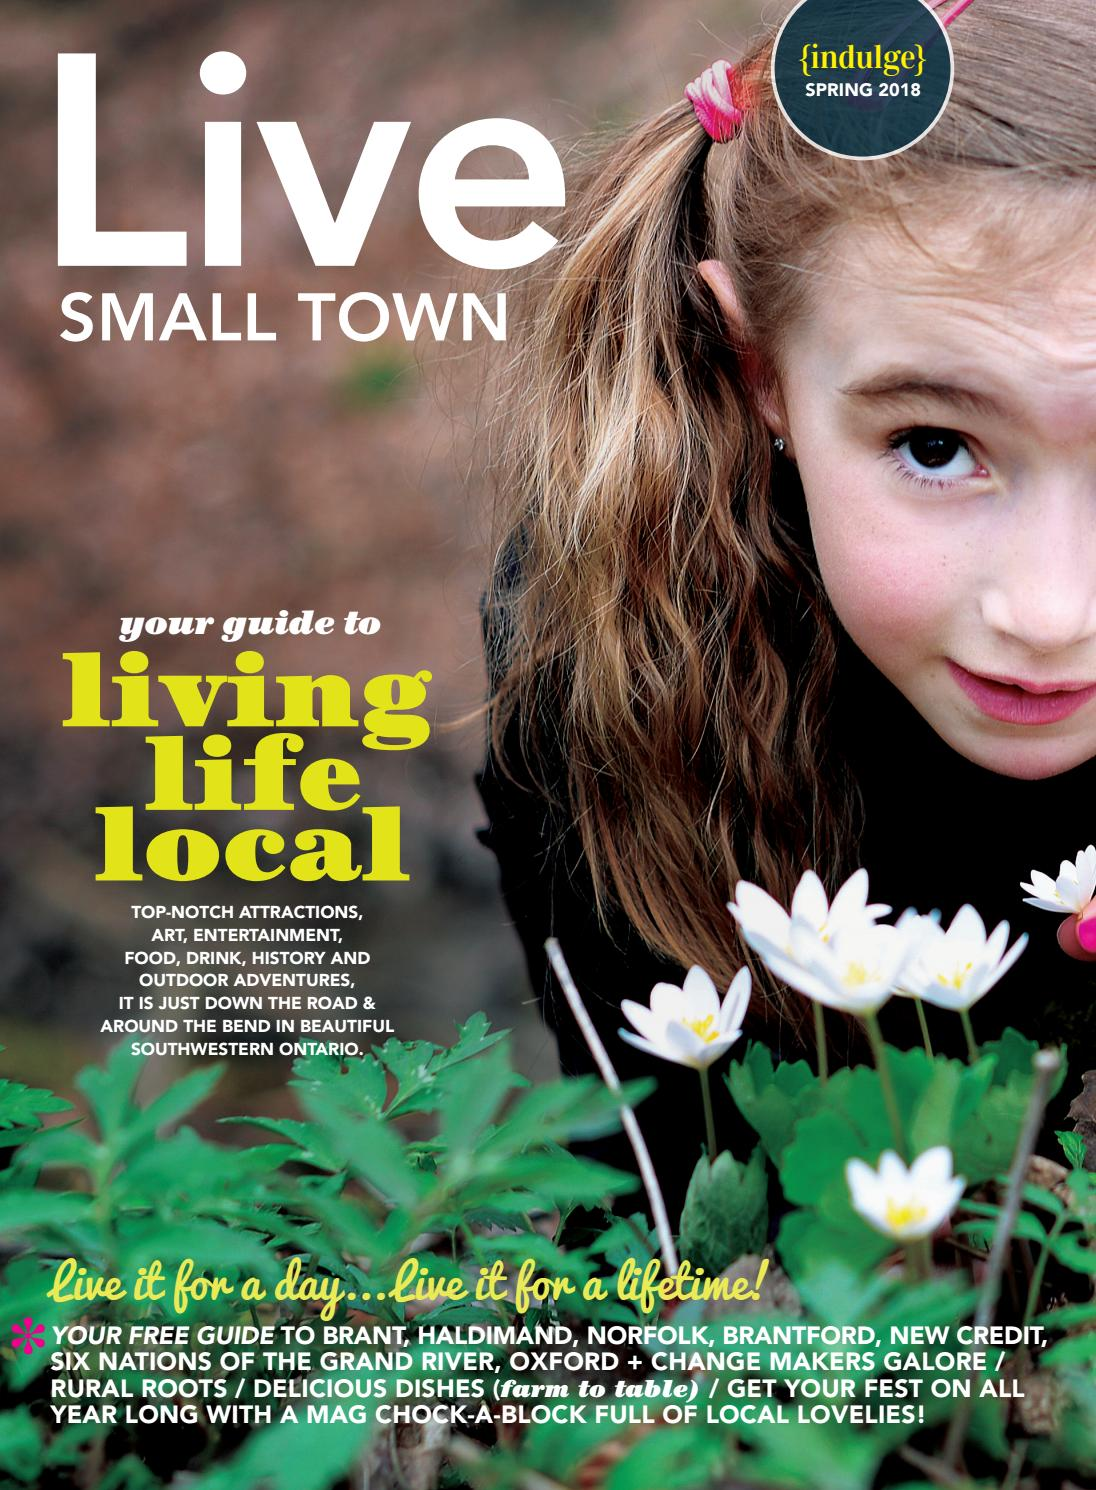 7946e0f65 Live Small Town Magazine Spring 2018 by Live Small Town Magazine - issuu